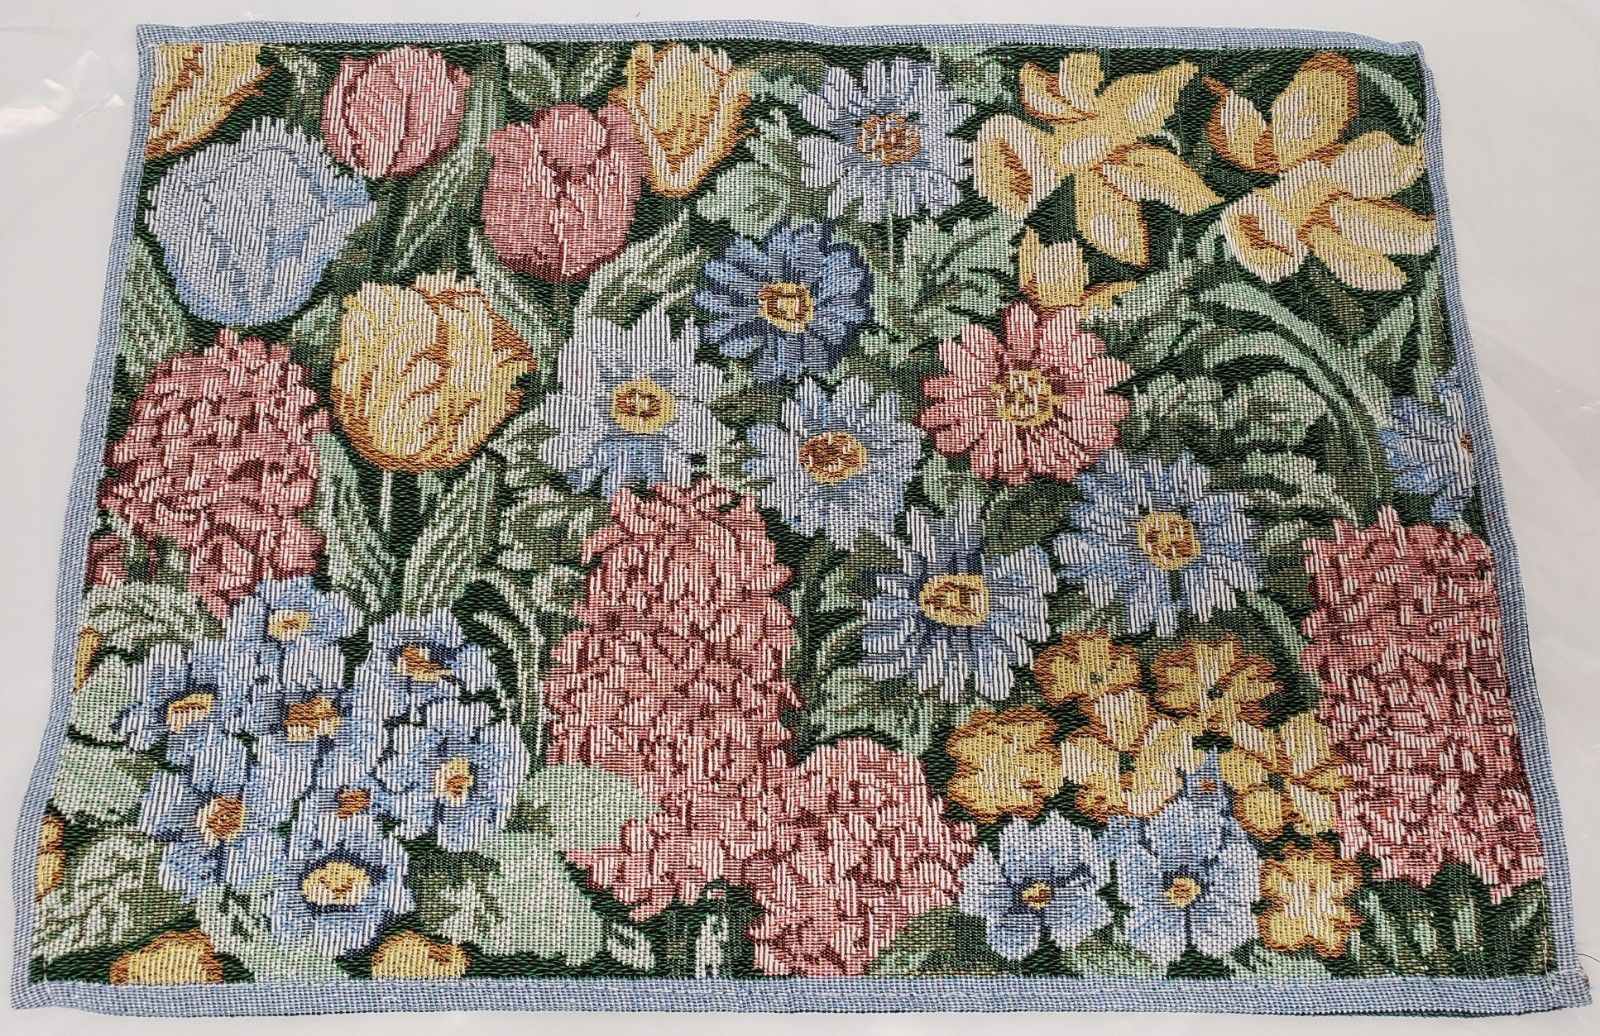 "Primary image for Set of 4 Tapestry Placemats, apprpx. 13"" x 19"", FLOWERS, MULTICLOR FLORAL DESIGN"